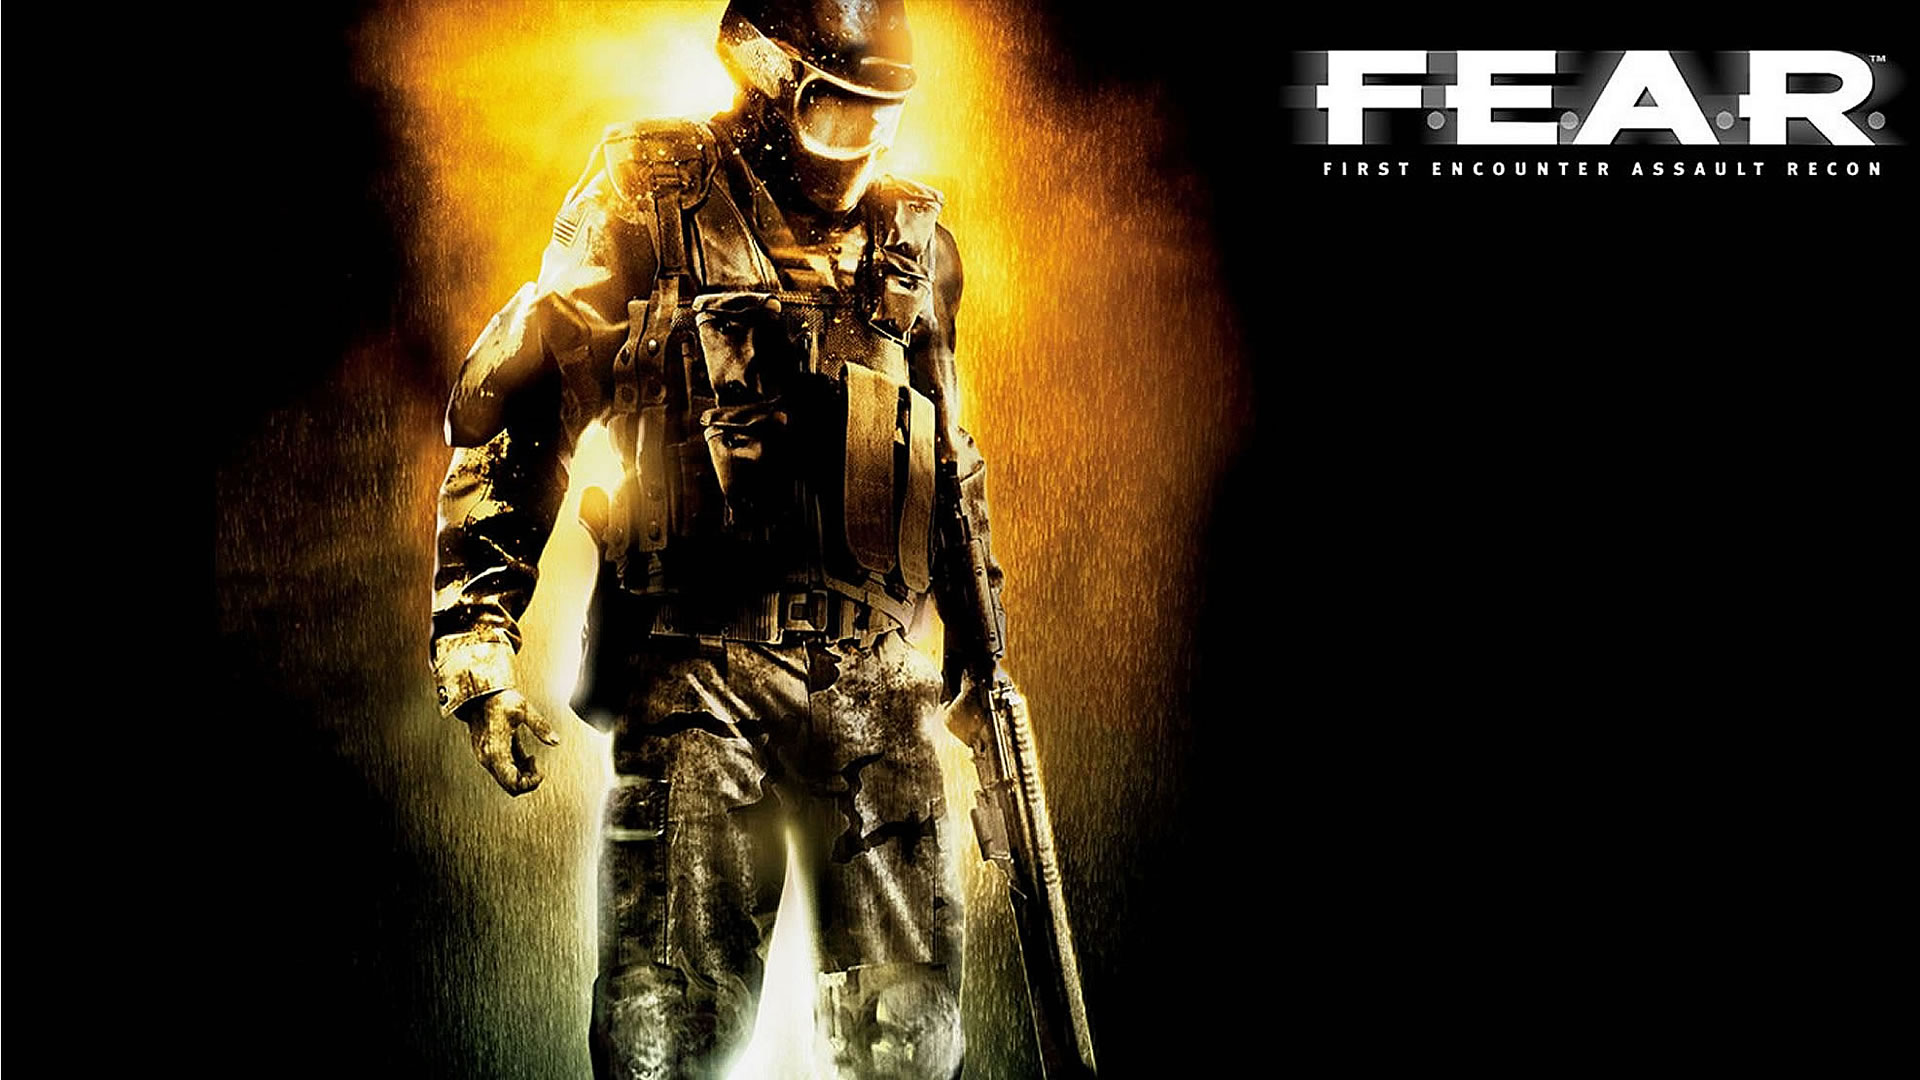 Factor X Fear Extraction Point Game 1920x1080 Download Hd Wallpaper Wallpapertip